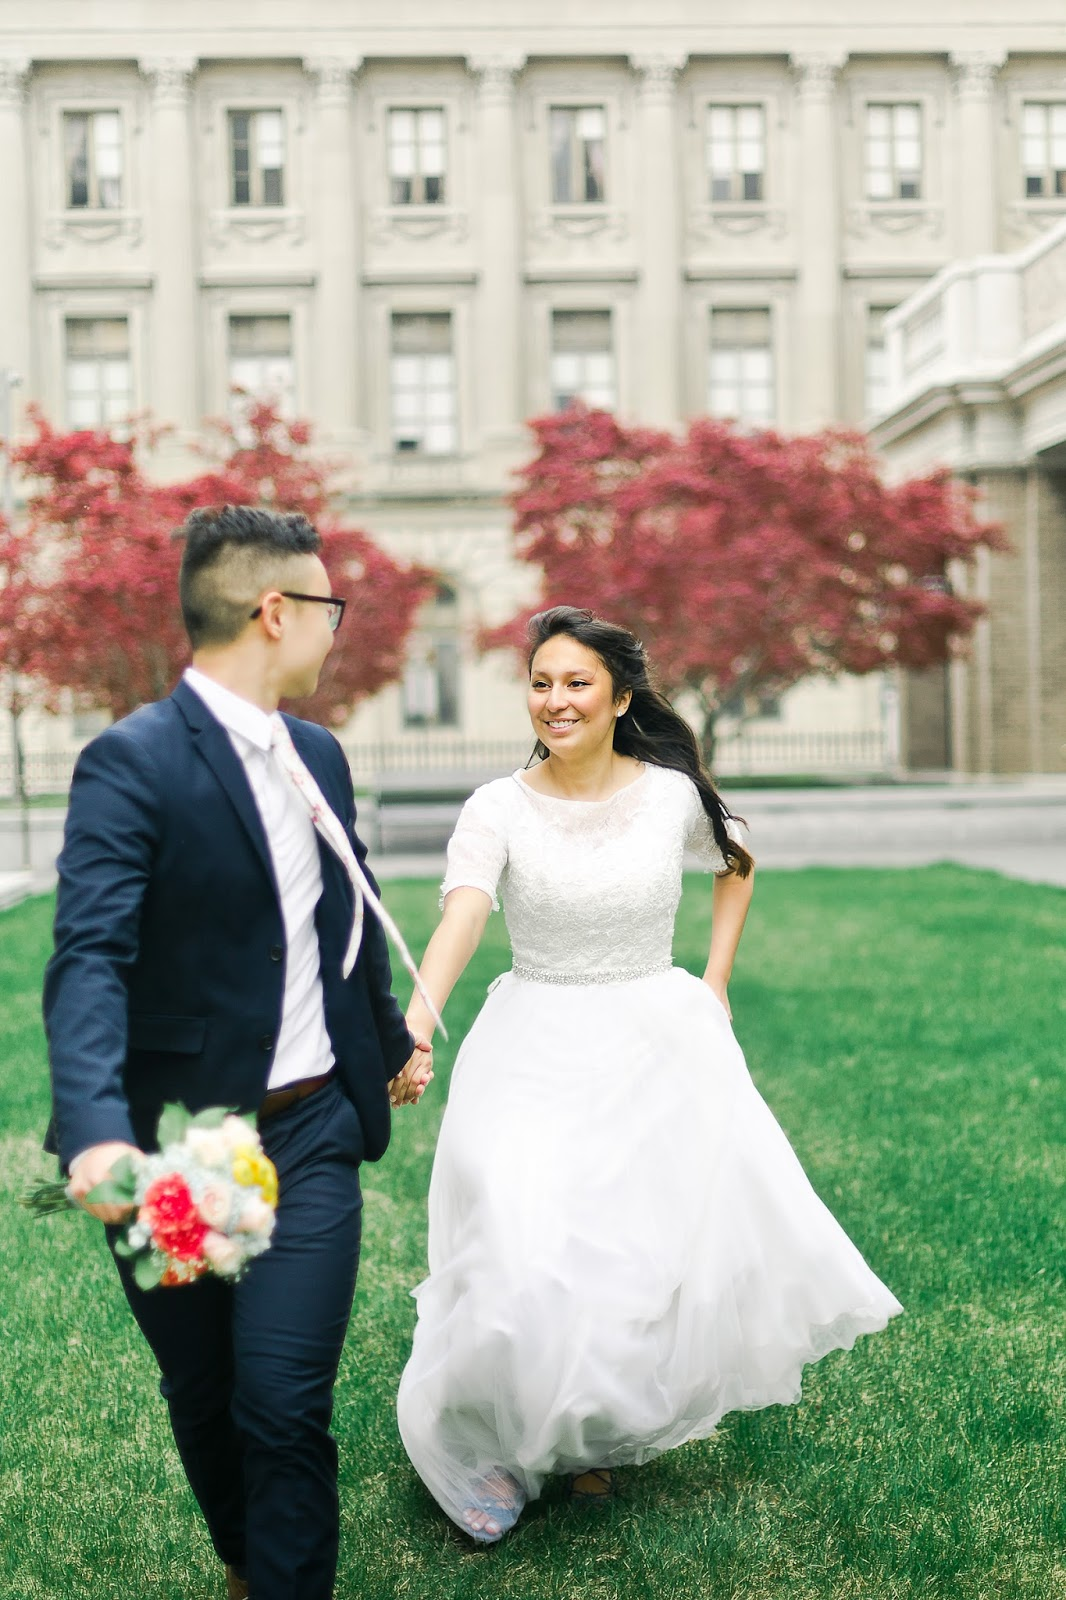 lds_philadelphia_temple_wedding_photography_010.jpg